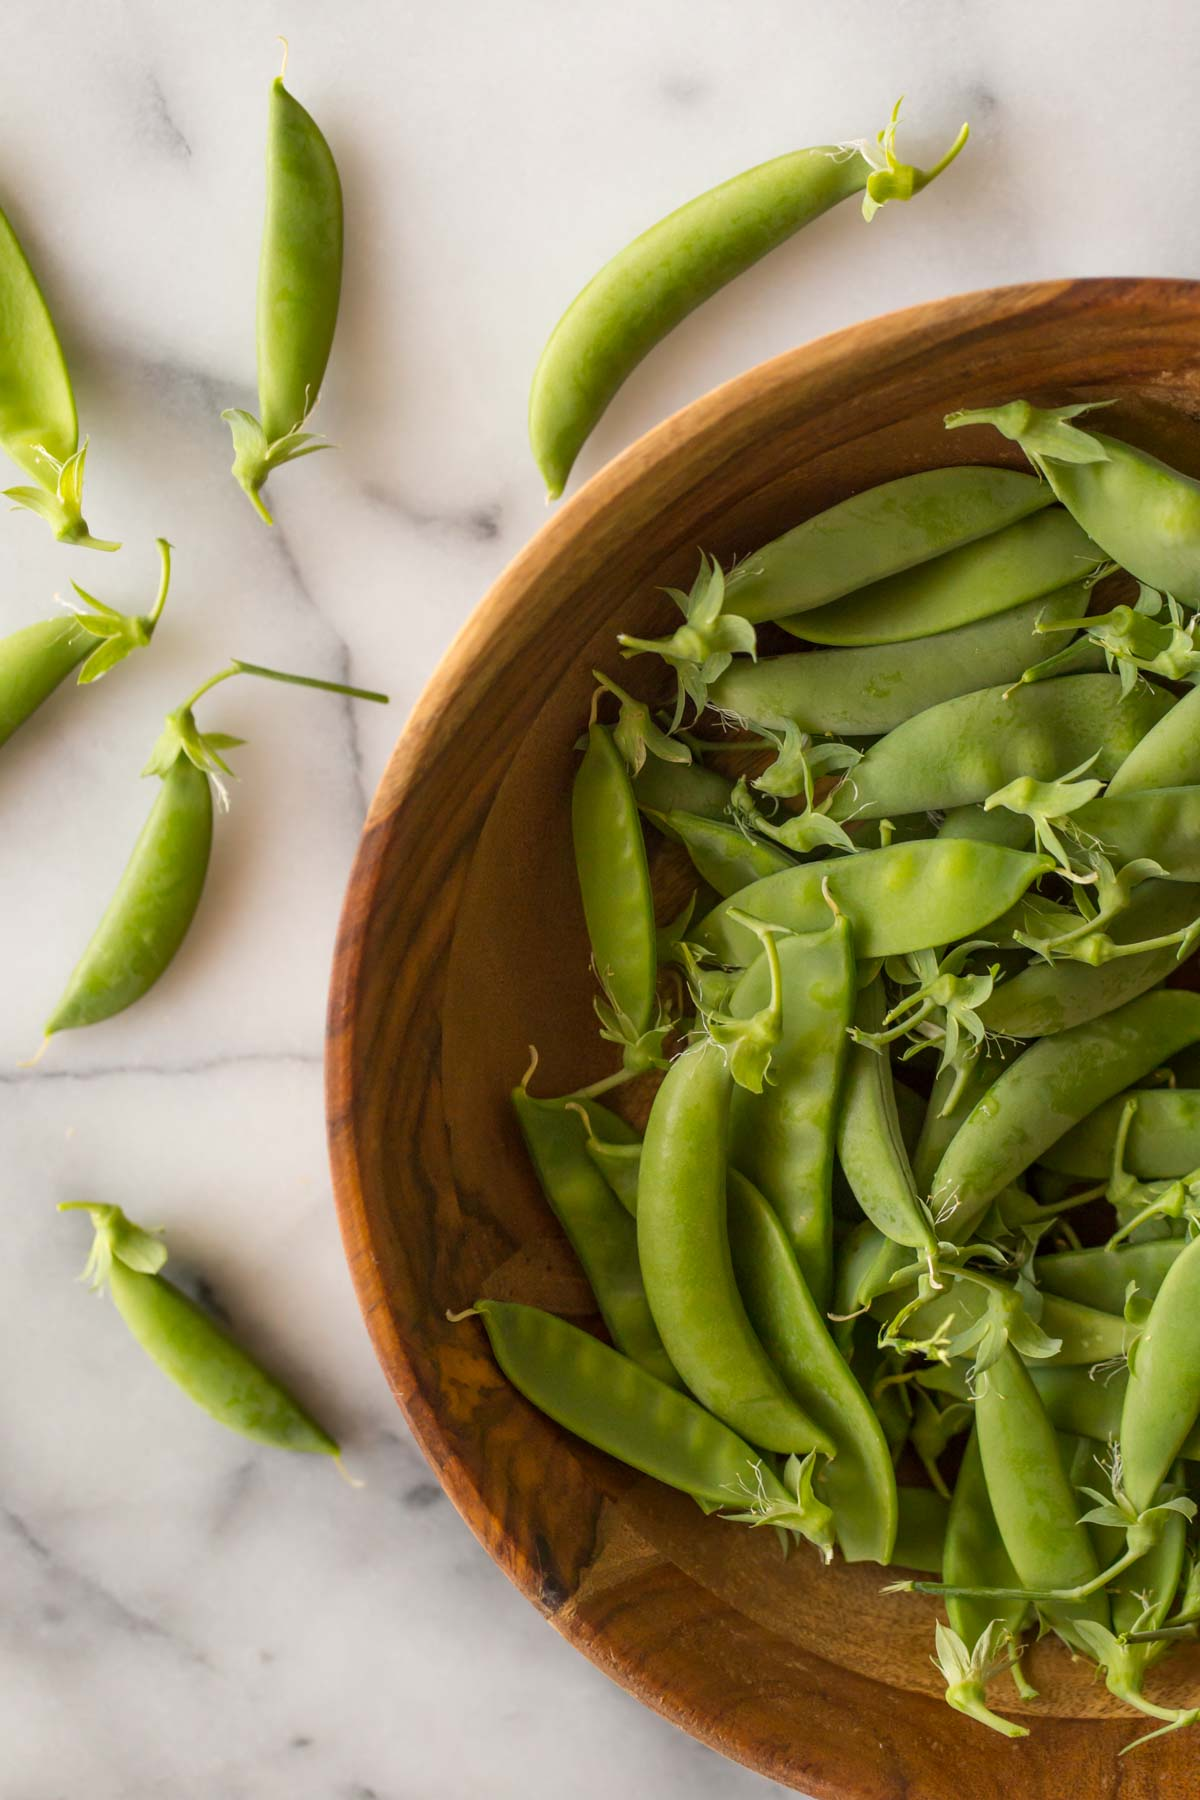 Overhead shot of a wooden bowl full of sugar snap peas on a white marble background.